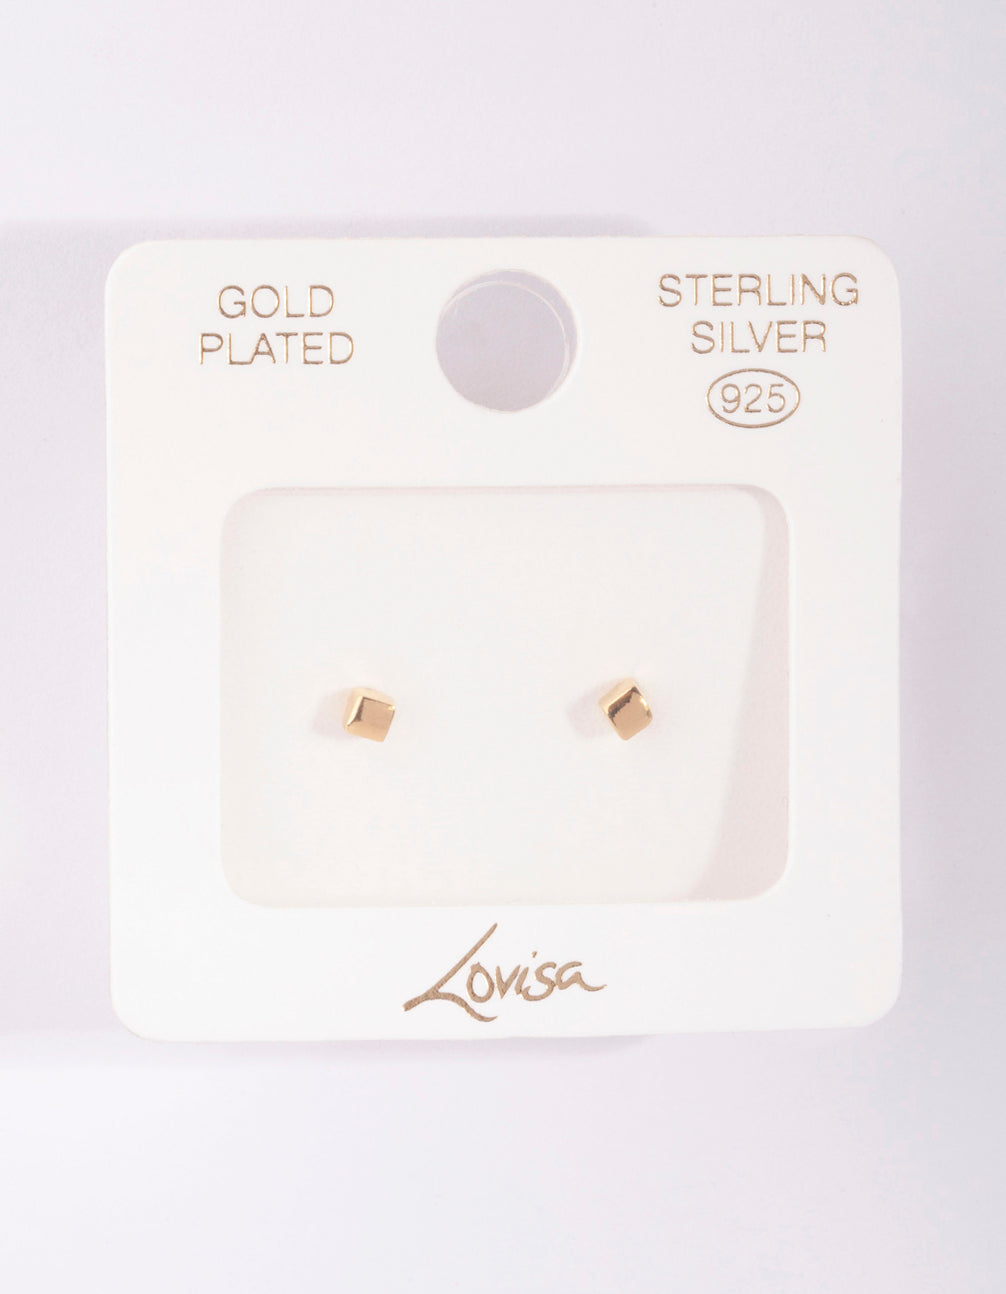 Gold Plated Sterling Silver Mini Cube Stud Earring